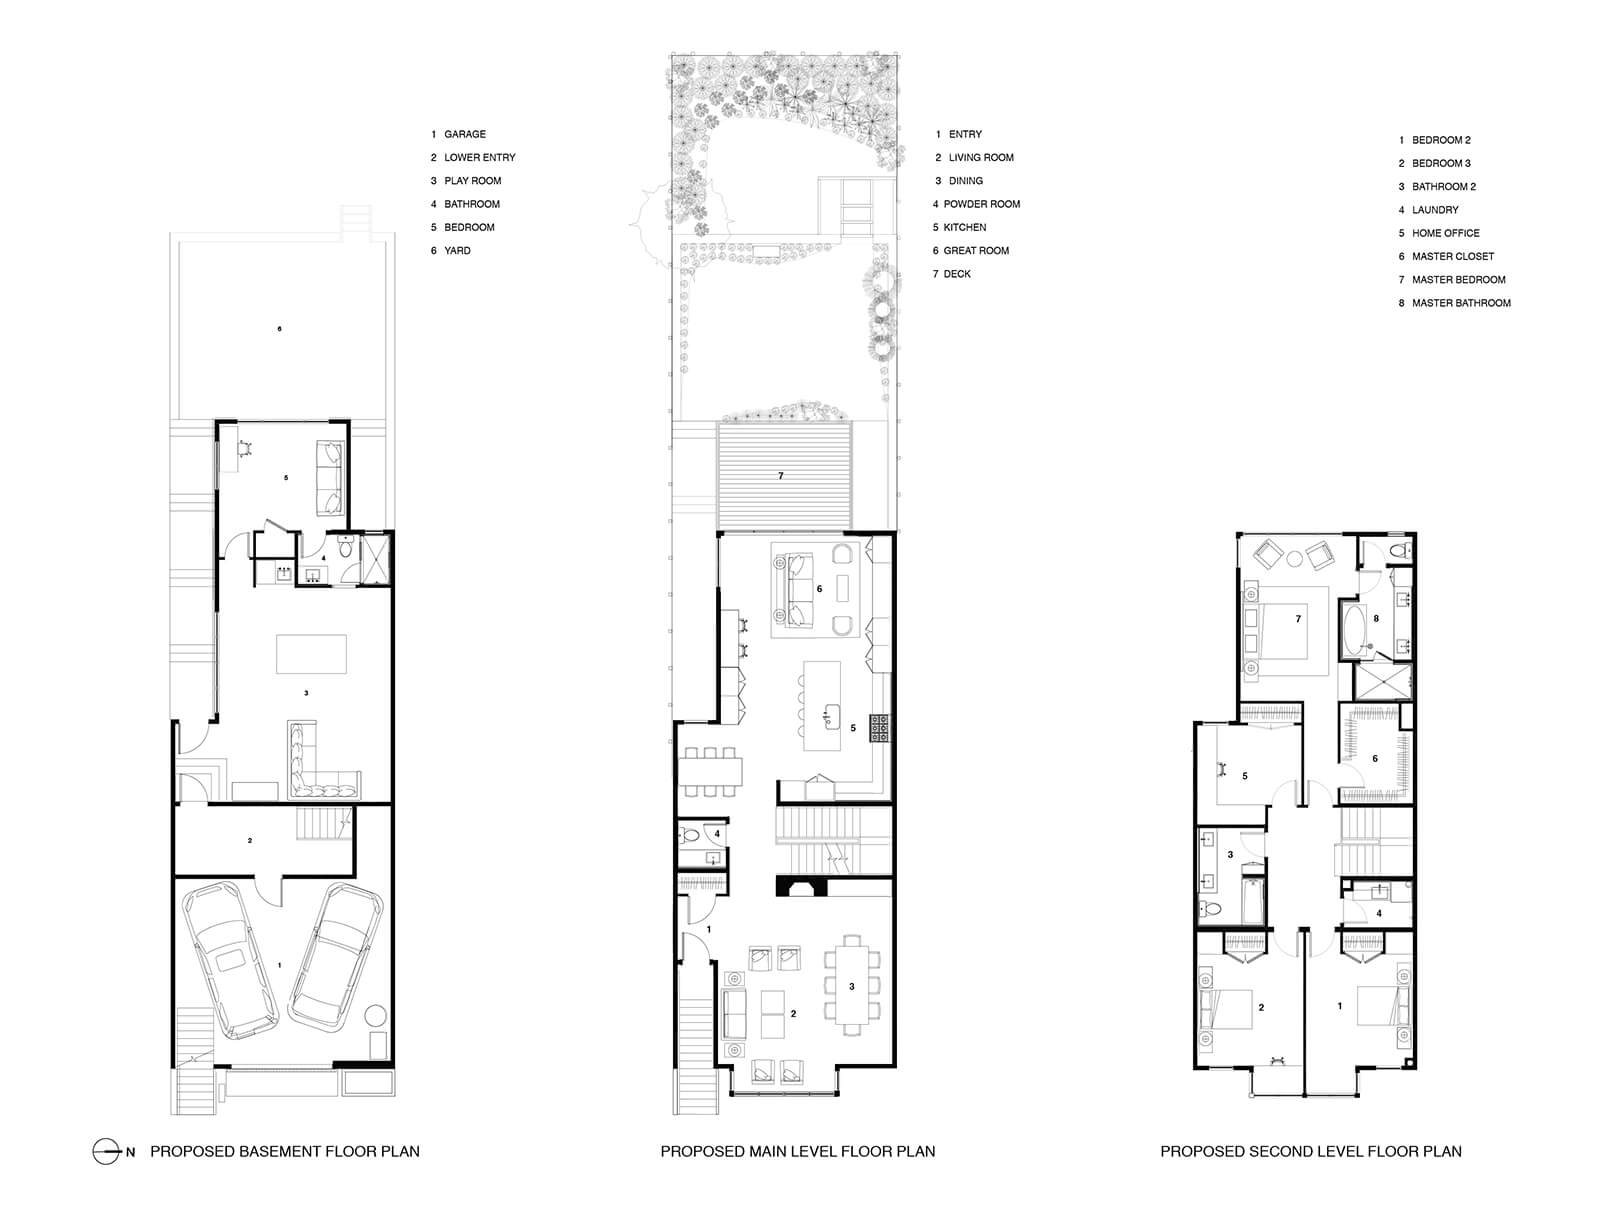 studio vara residential diamond drawing plan